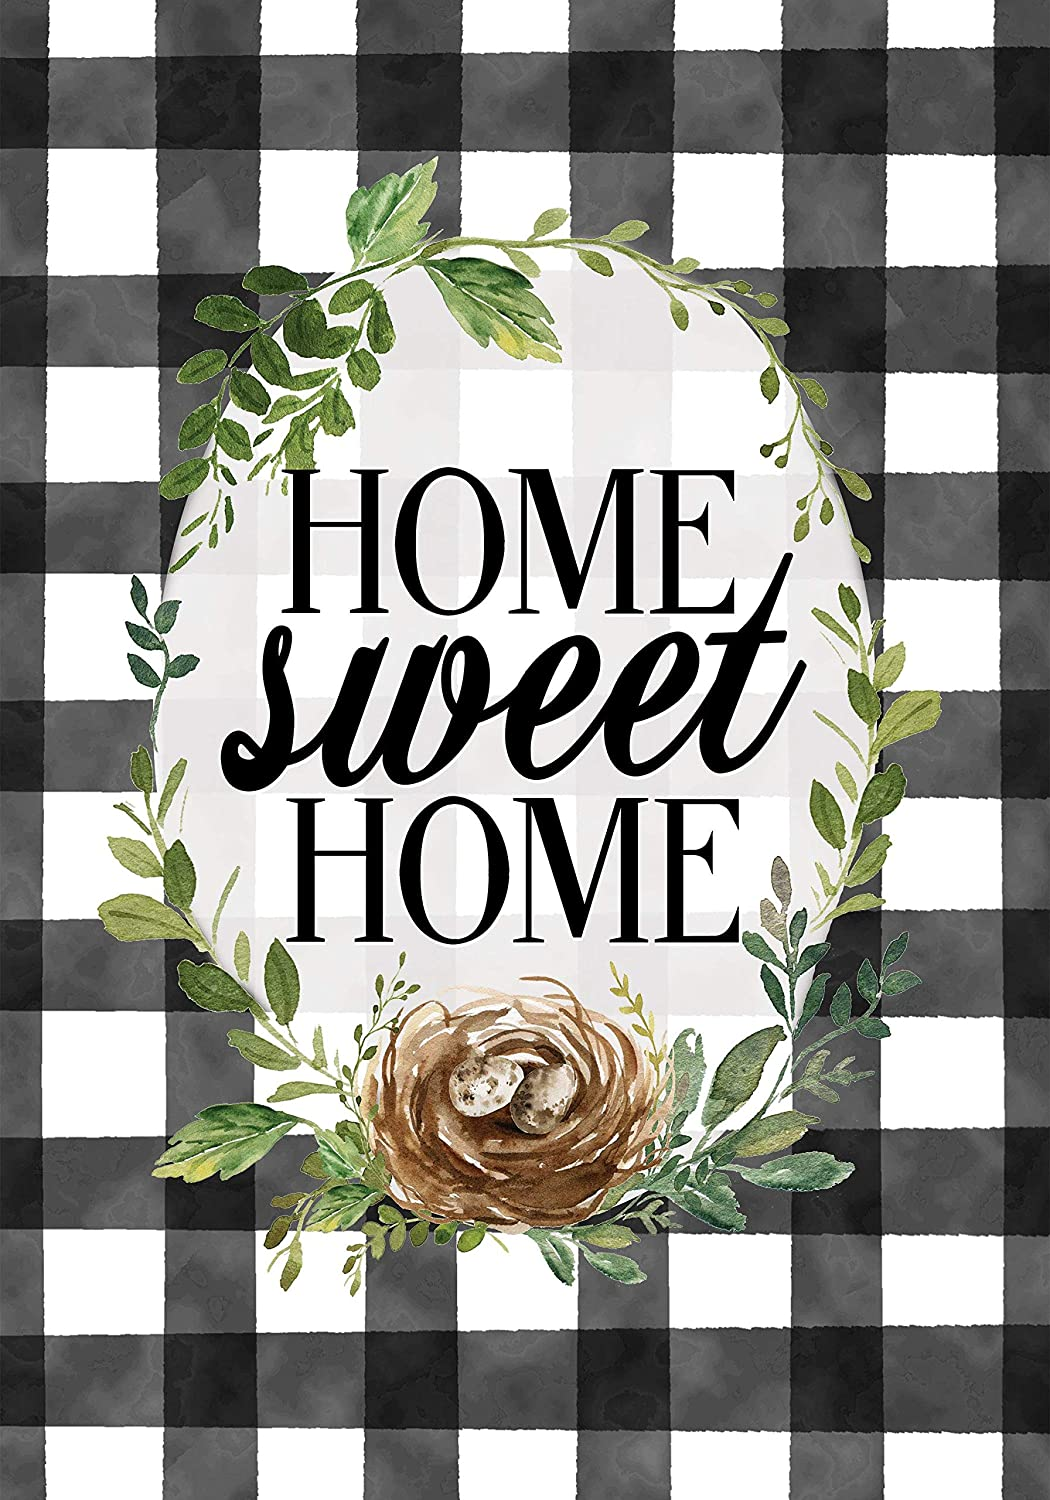 Custom Decor Gingham Home Sweet Home - Standard Size, 28 x 40 Inch, Decorative Double Sided, Licensed and Copyrighted Flag - Printed in The USA Inc.